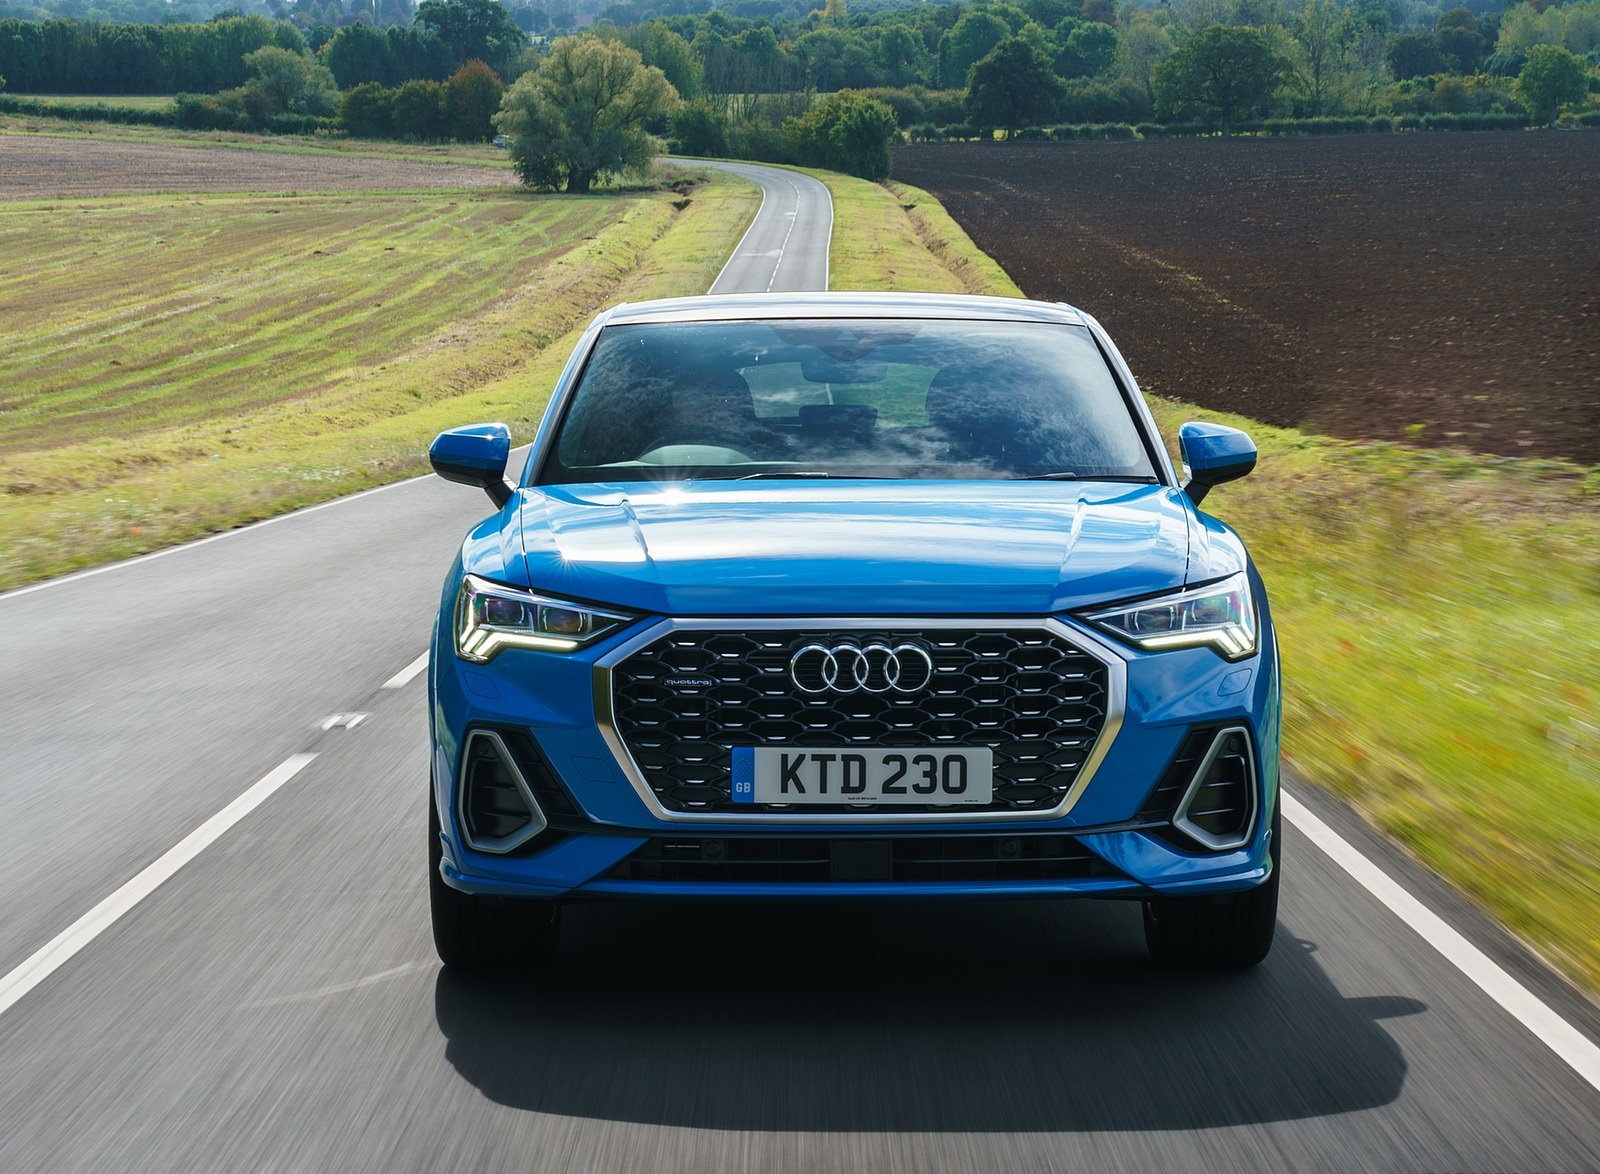 2020 Audi Q3 Sportback 45 TFSI quattro (UK-Spec) Front Wallpapers (8)